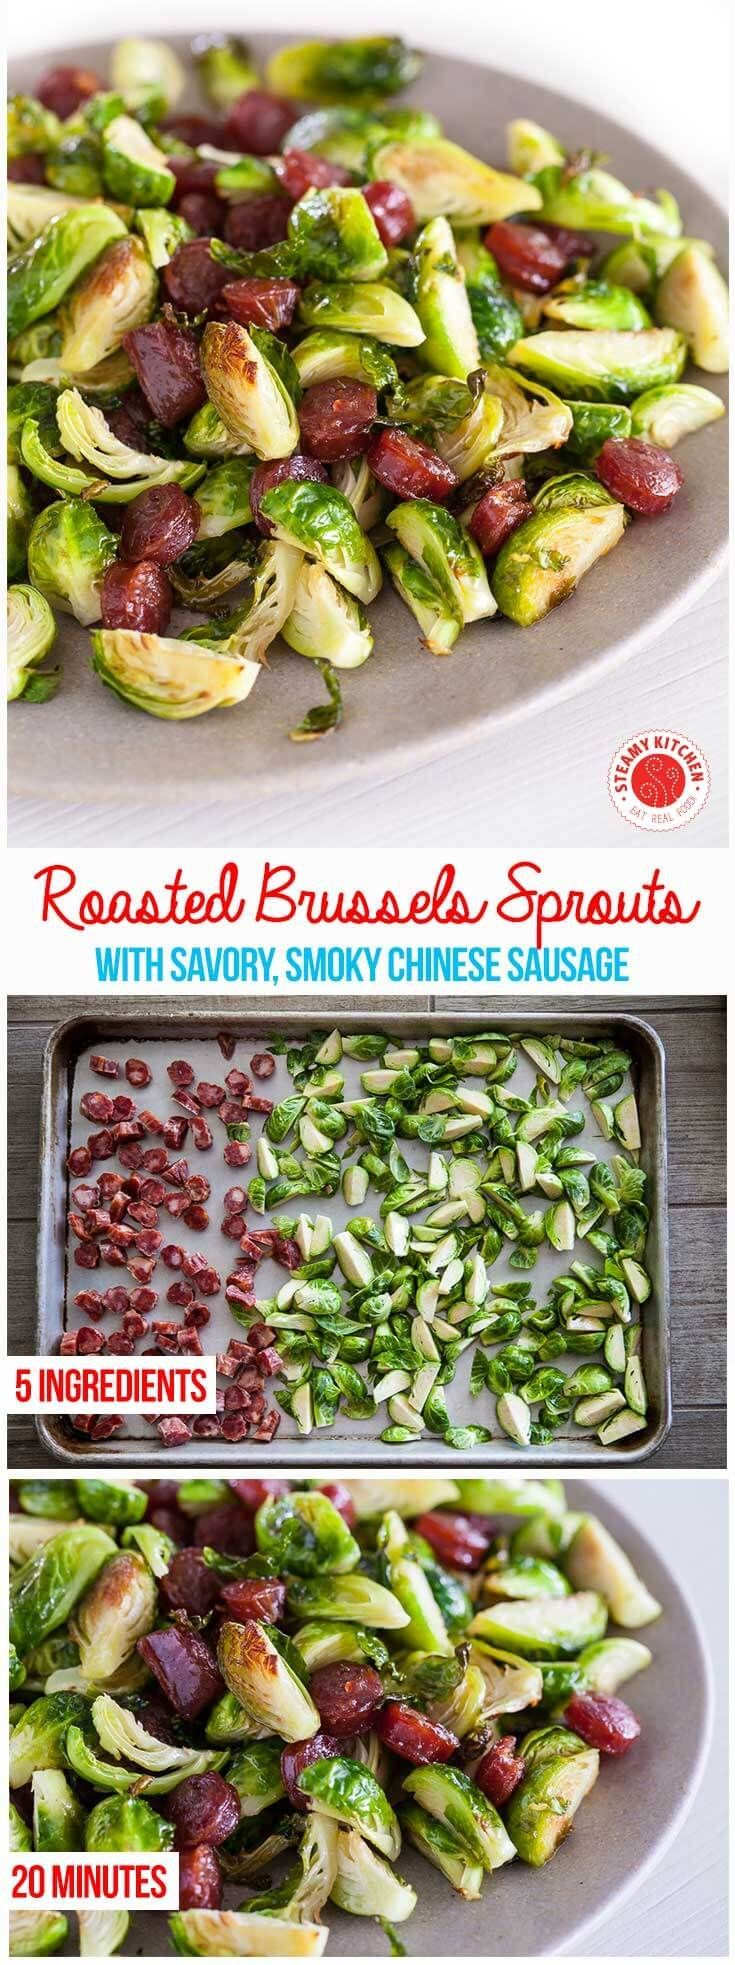 Savory-sweet and smoky Chinese Sausage roasted with Brussels Sprouts. 5 Ingredients, 20 minutes. ~ http://steamykitchen.com